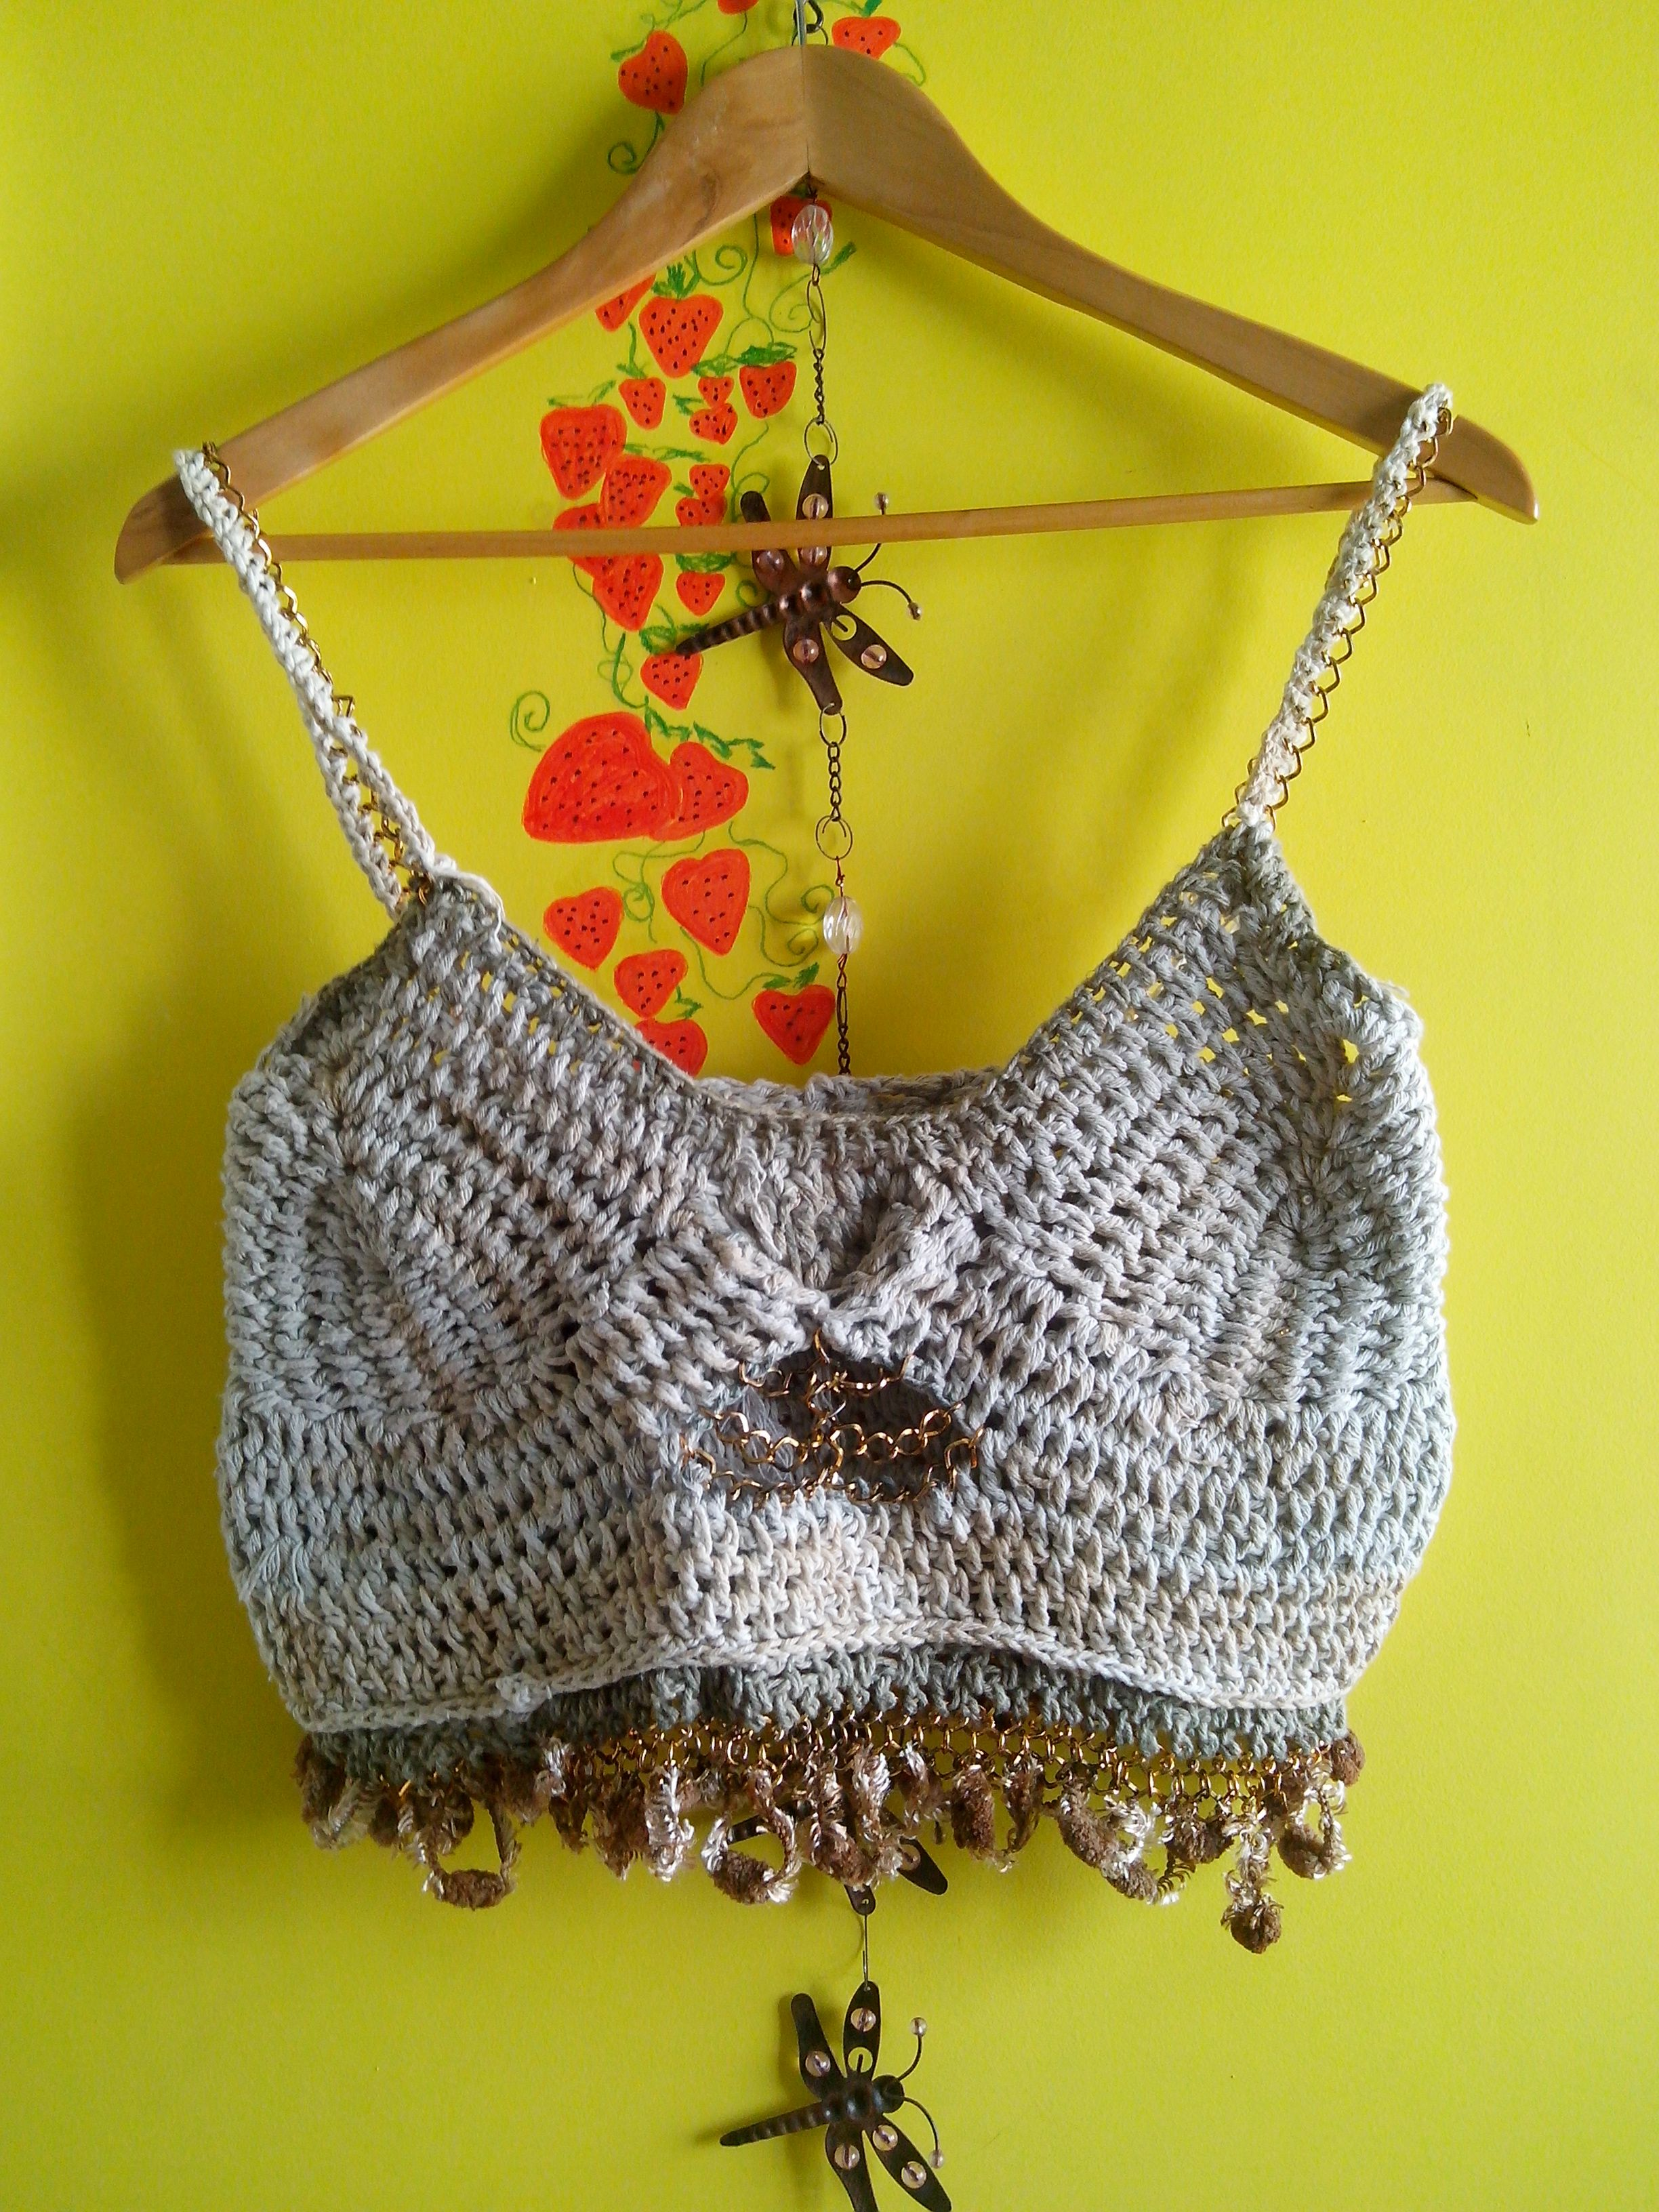 Top de Crochet https://mirelando.wordpress.com/2015/02/08/corrente-cafe-e-morangos/